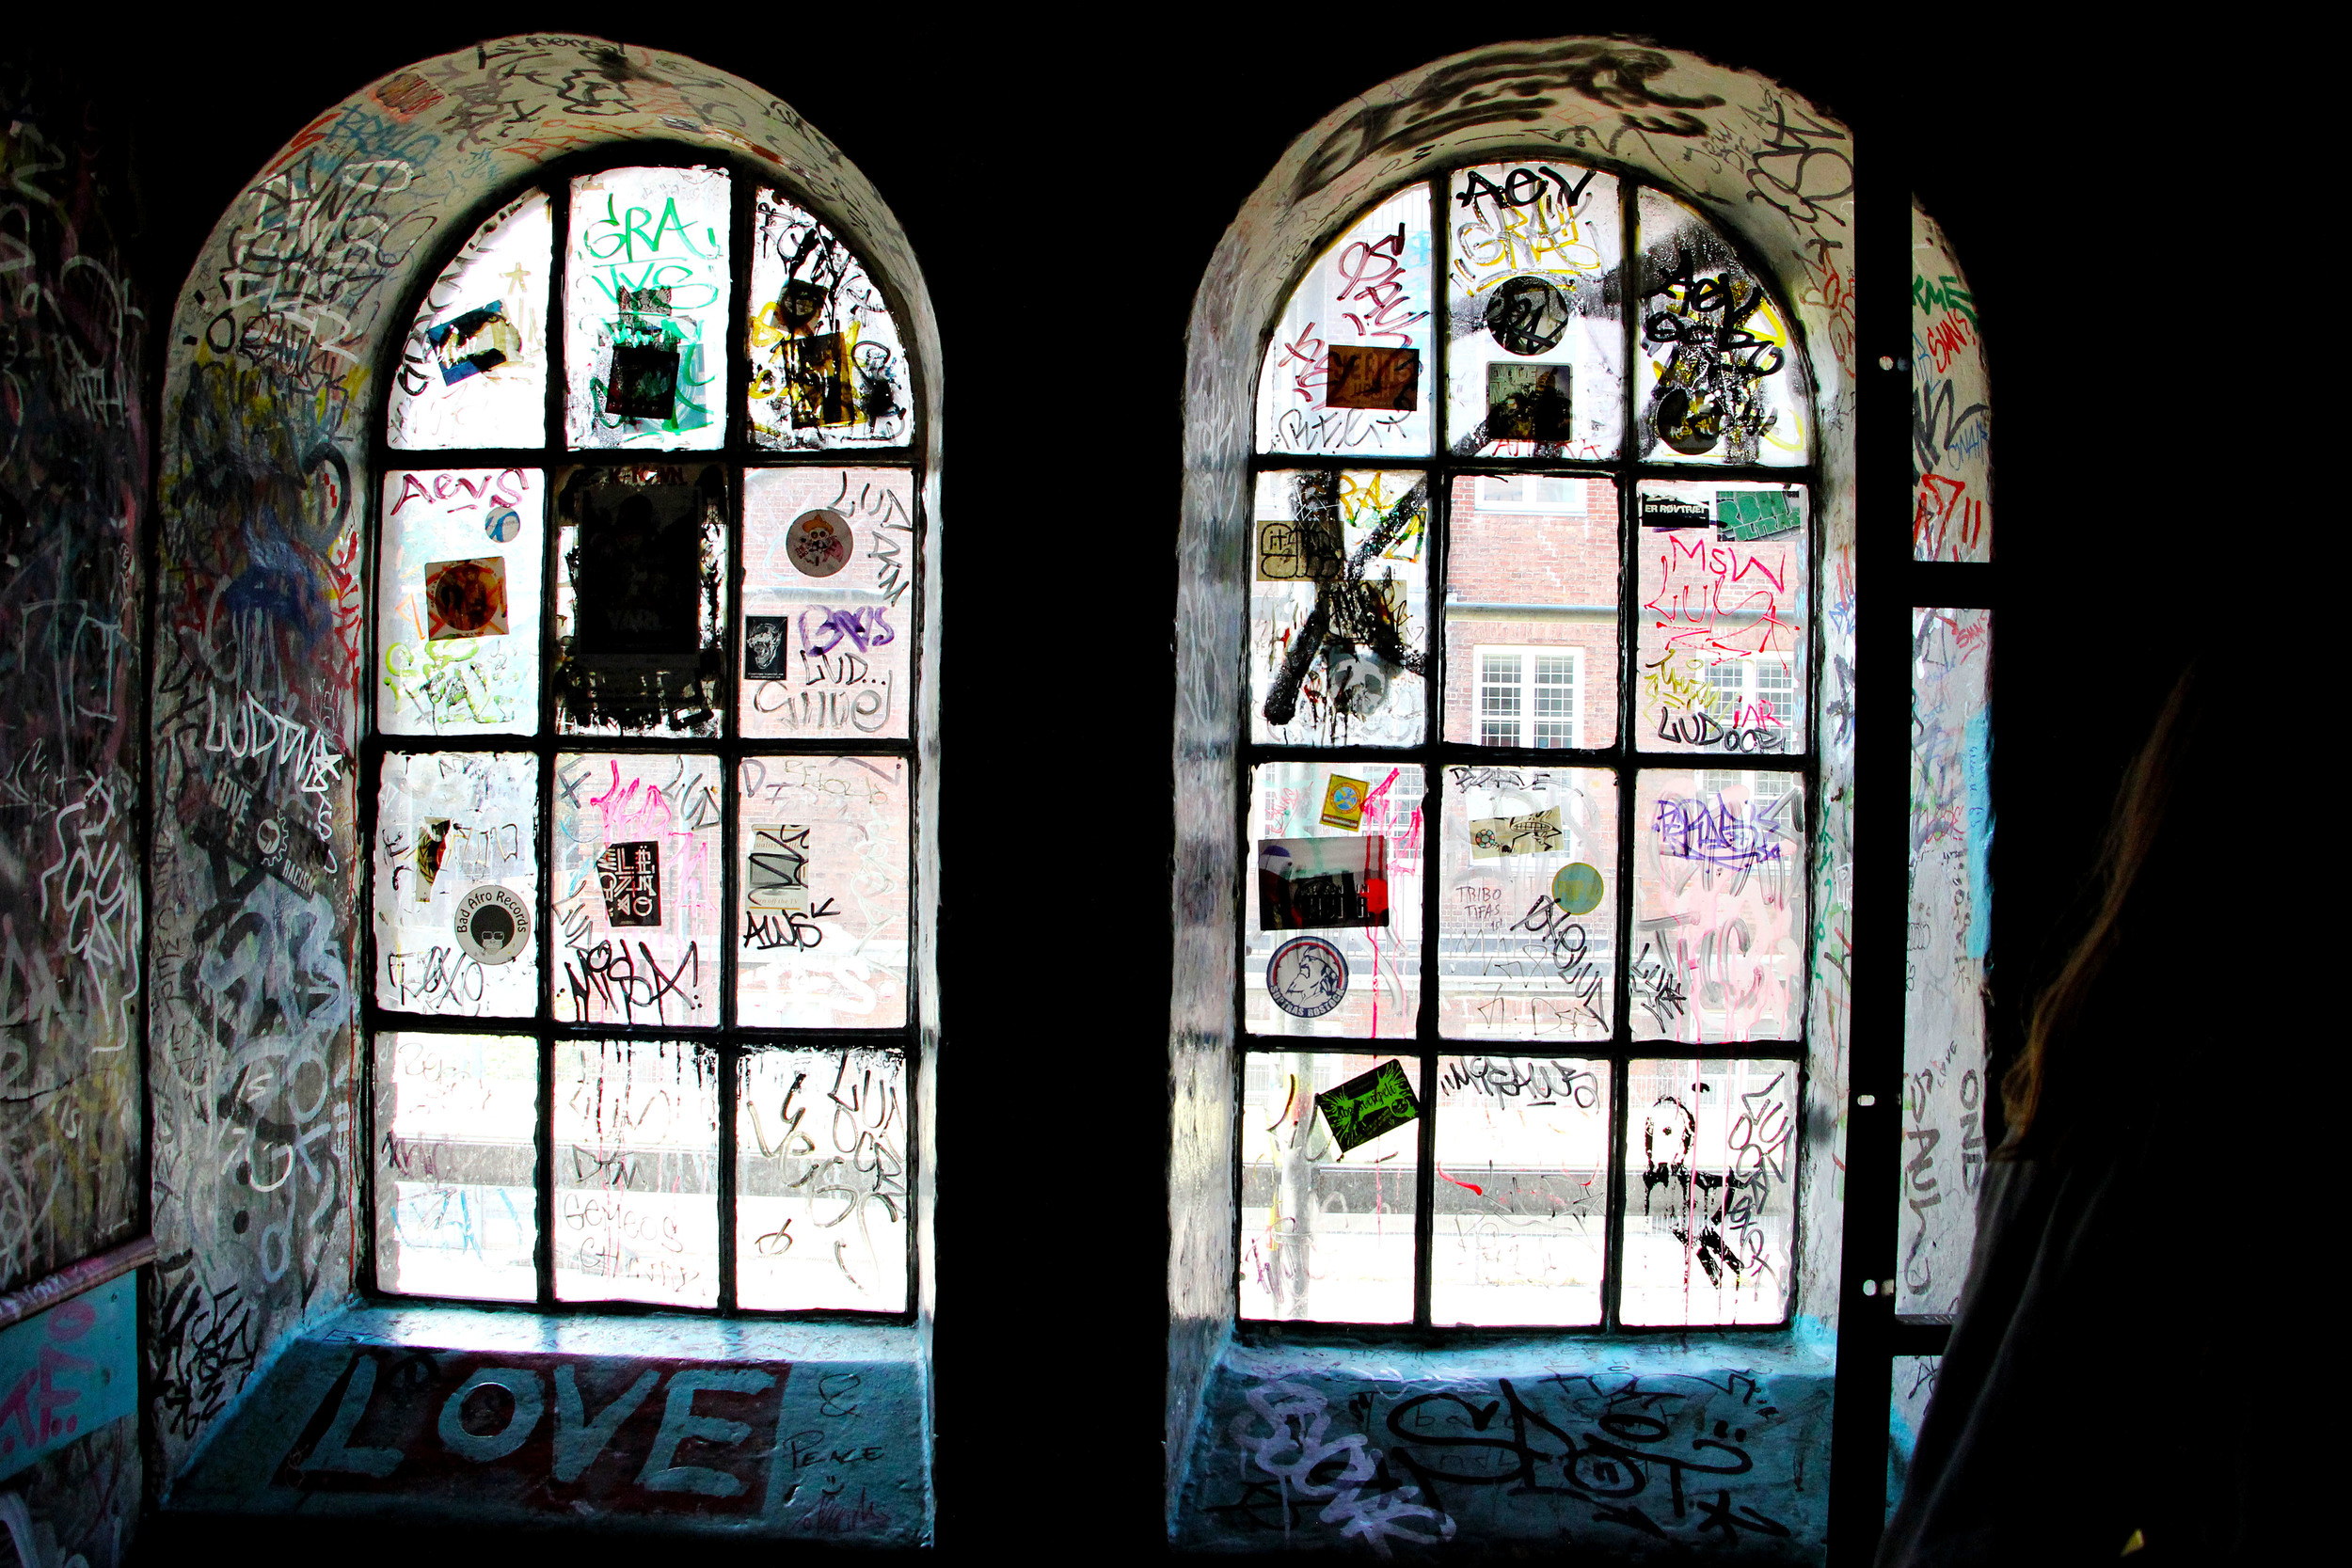 View of a window inside one of the poster galleries.